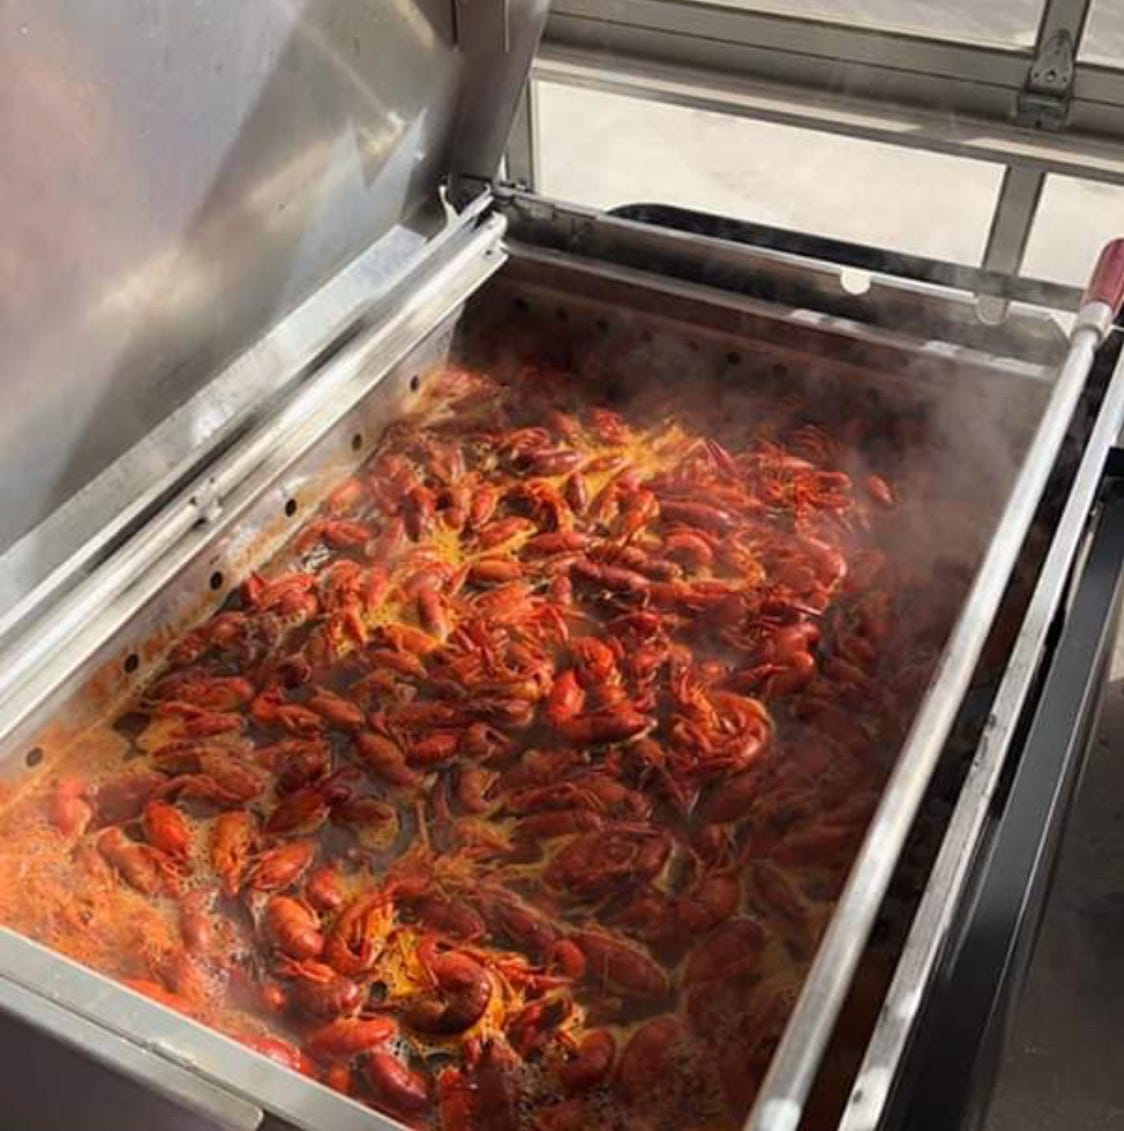 Crawfish chefs enjoy cooking for thousands of their closest friends